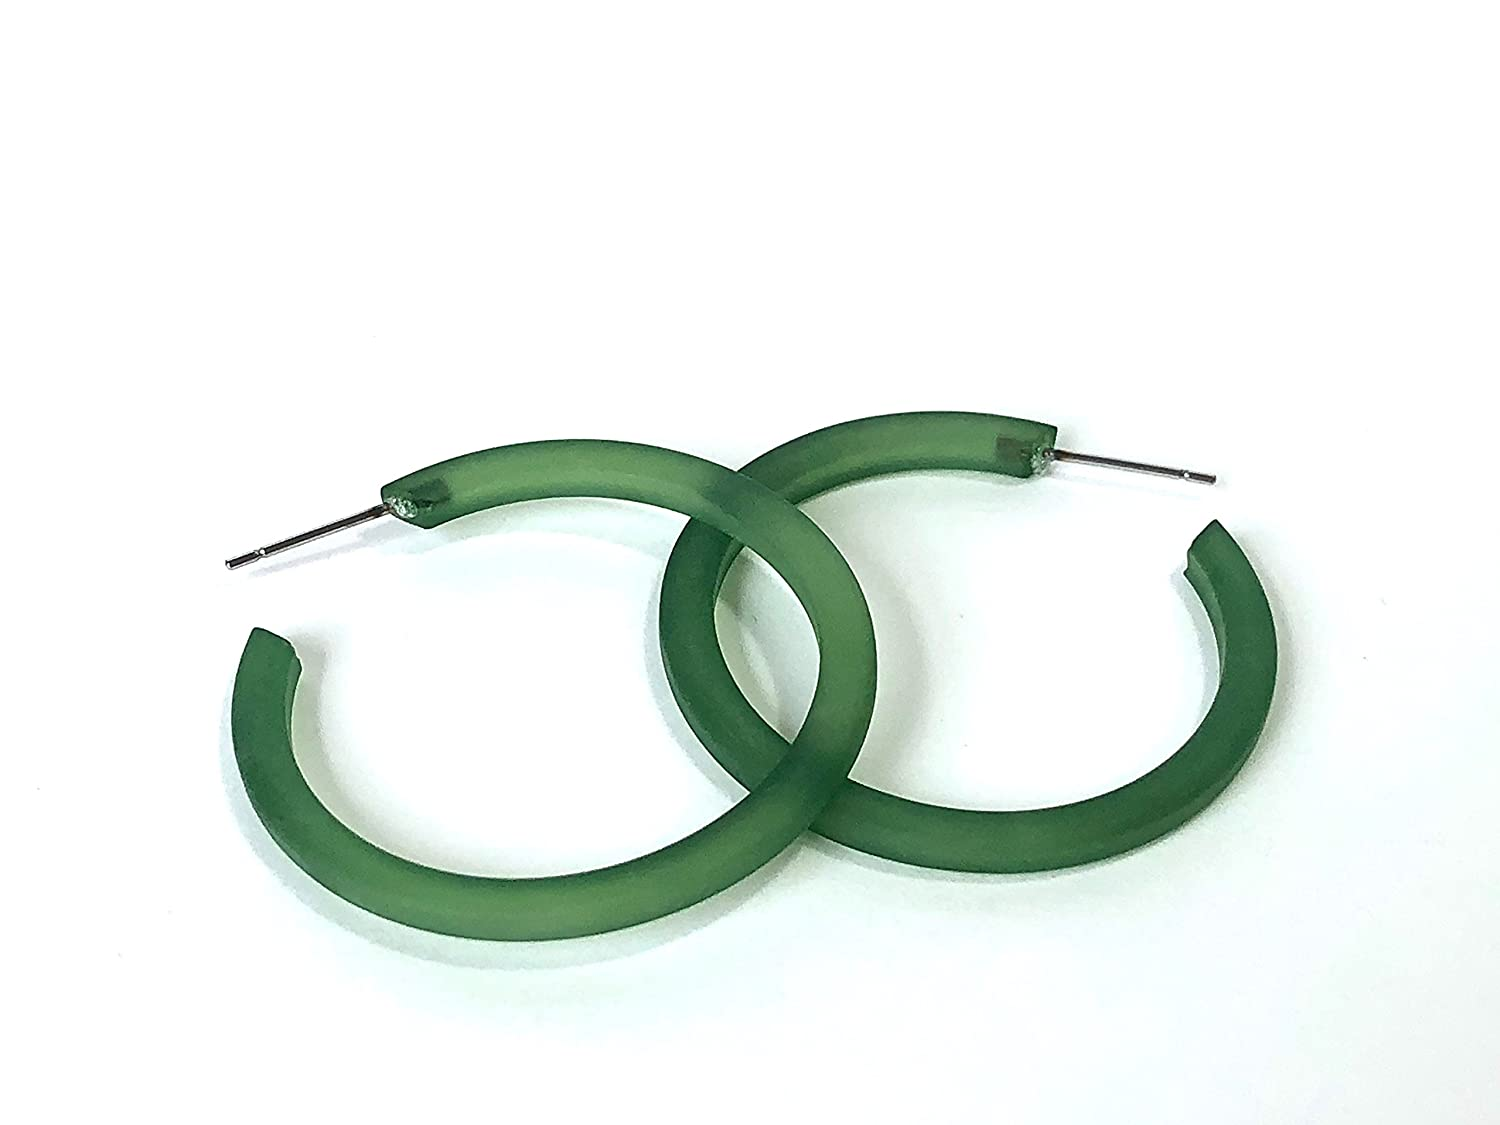 vintage frosted thread thin classic lucite hoop earrings Sea Glass Green Hoop Earrings